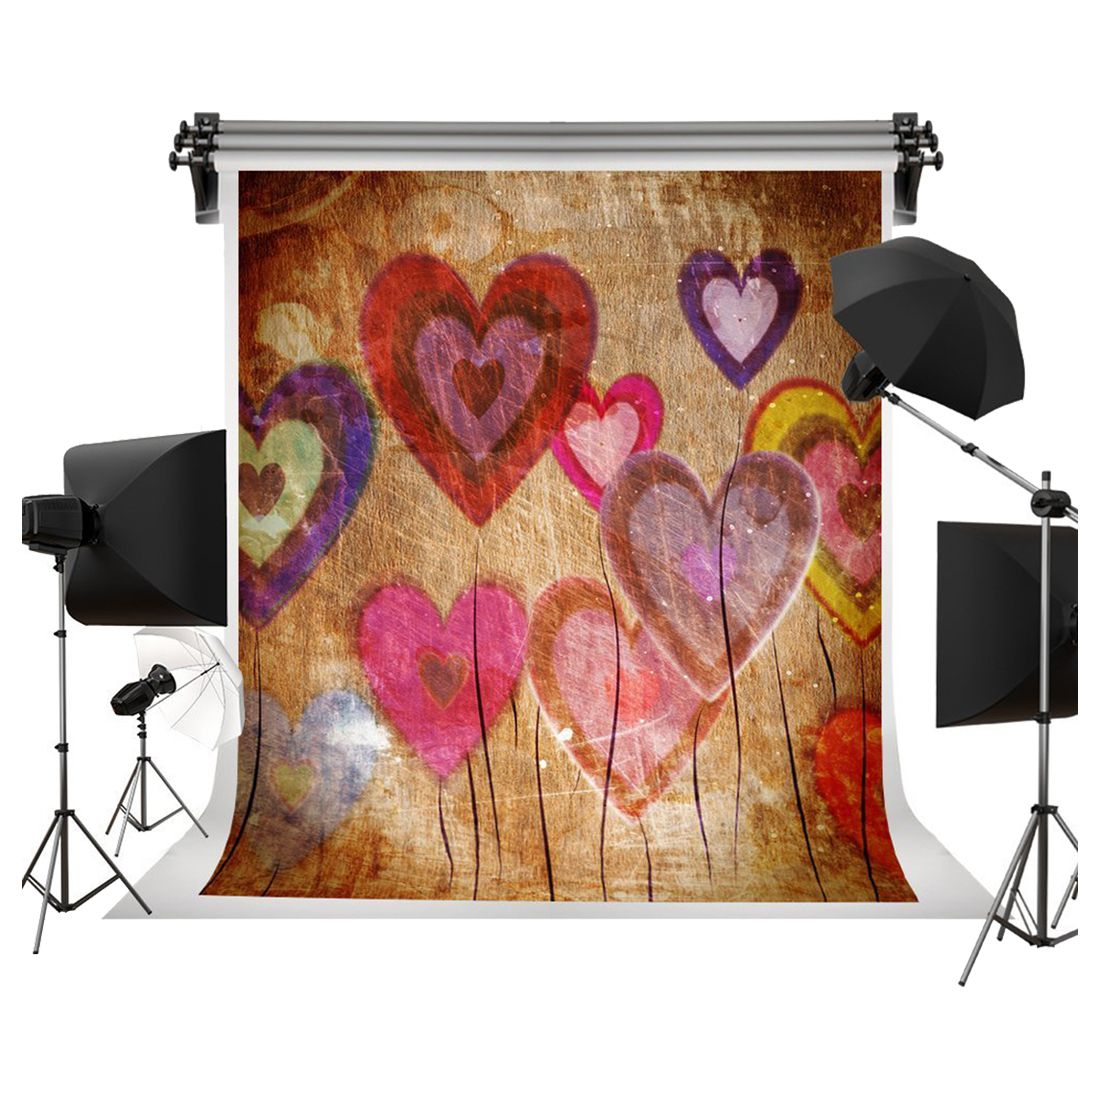 Top Deals Valentine's Day Backgrounds Abstract love heart for Lovers Valentine's Day Photo Photography Studio Props Background image